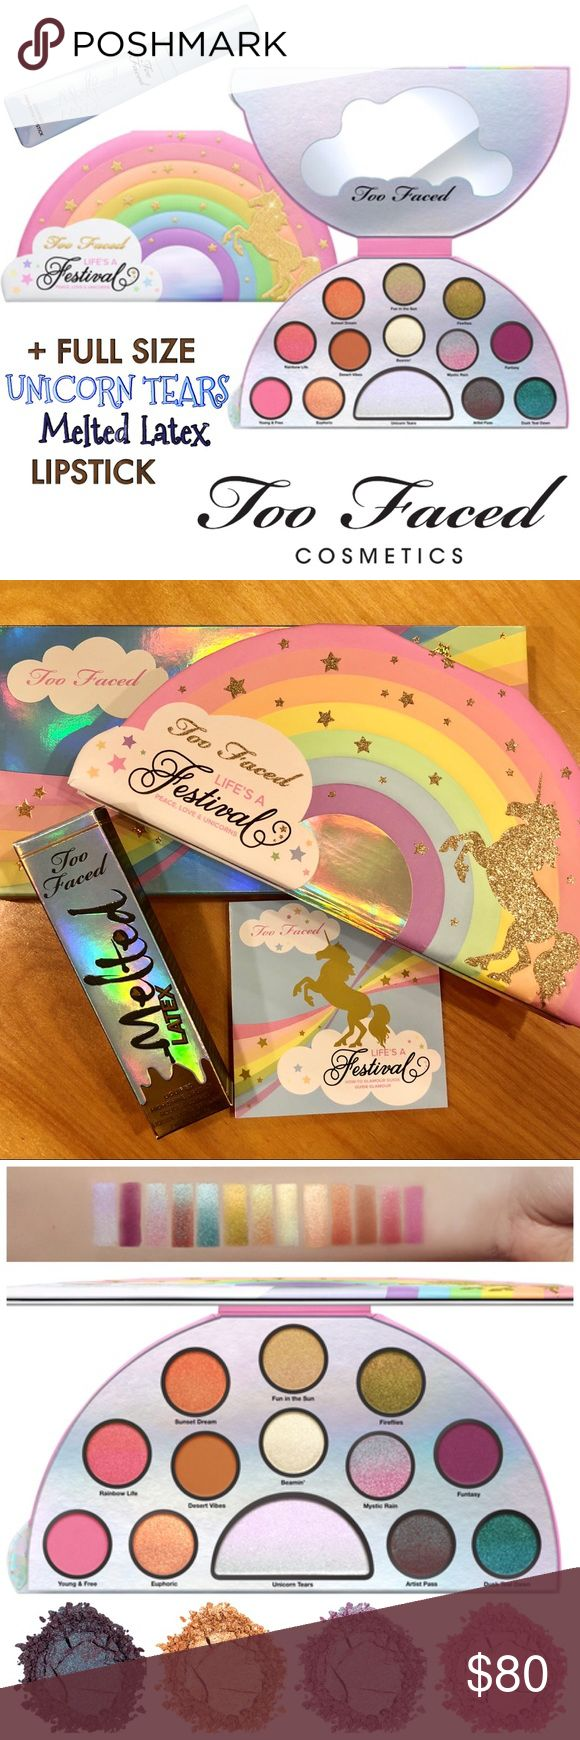 NEW Too Faced FESTIVAL Palette & MELTED Lipstick Brand new. Original boxes. NEVER swatched. A 2-Piece TOO FACED Set:   LIFE'S A FESTIVAL Ethereal Eyeshadow Palette  ➕  FullSize MELTED LATEX Lipstick in 'Unicorn Tears'.  THIS lipstick inspired the LIFES A FESTIVAL Collection - and it's now SoldOut on TF's site.  Guaranteed authentic as always. Smoke free home. Plus GREAT gifts!  A MAGICAL PAIR: An ethereal, mystical palette of duo-chrome shades, bold creamy mattes, and a Unicorn Tears